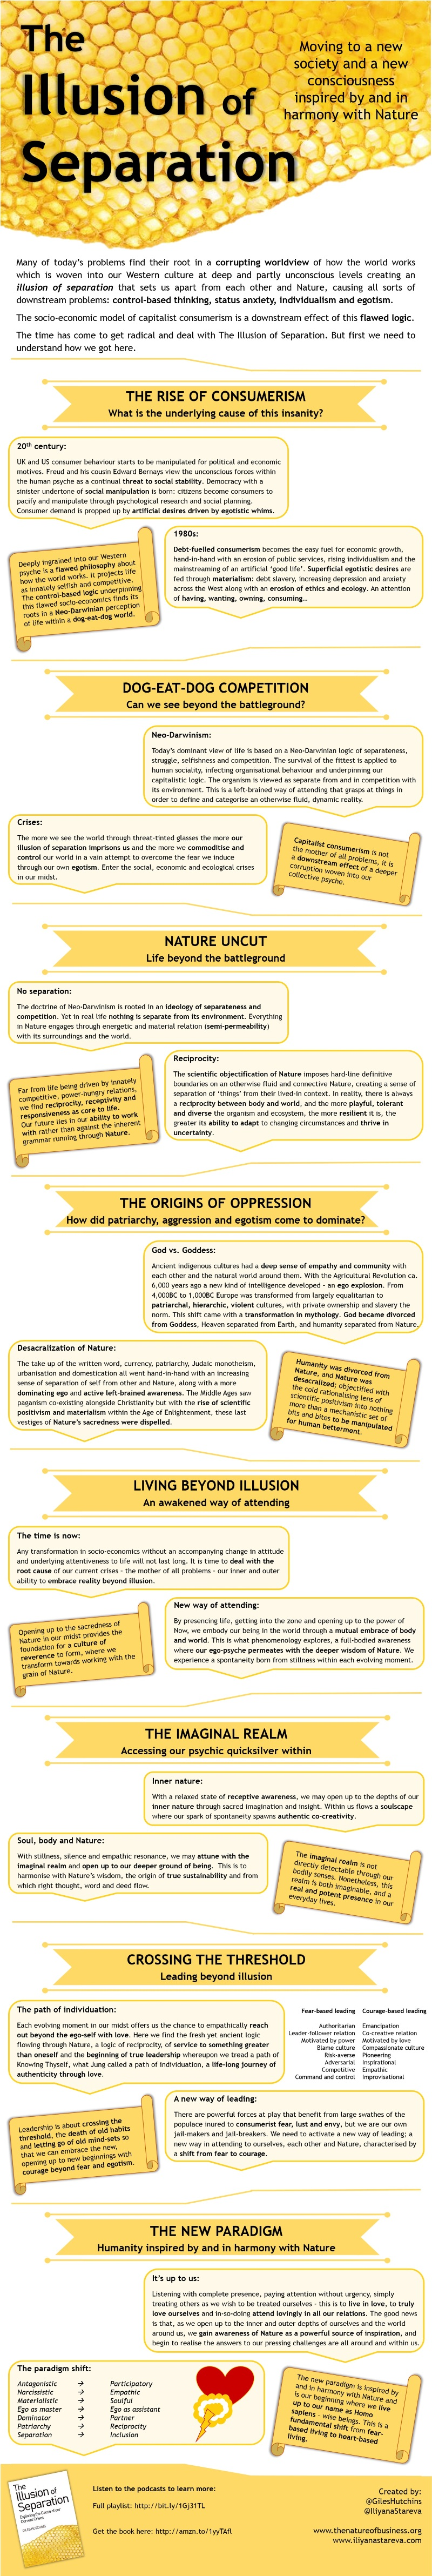 the-illusion-of-separation-infographic-jpg-small